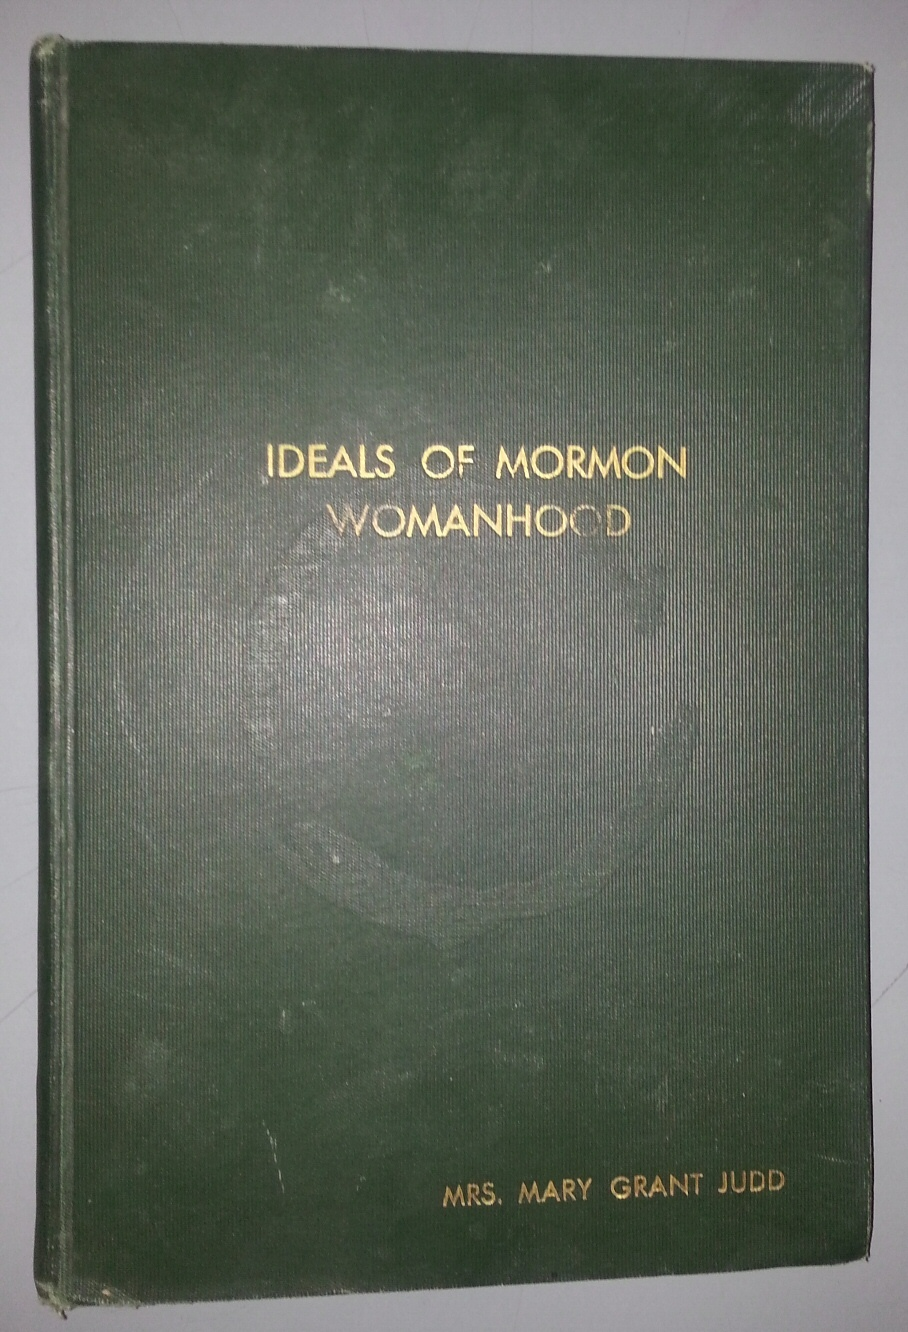 Ideals of Mormon womanhood; For the Department for women and girls., Deseret Sunday School Union